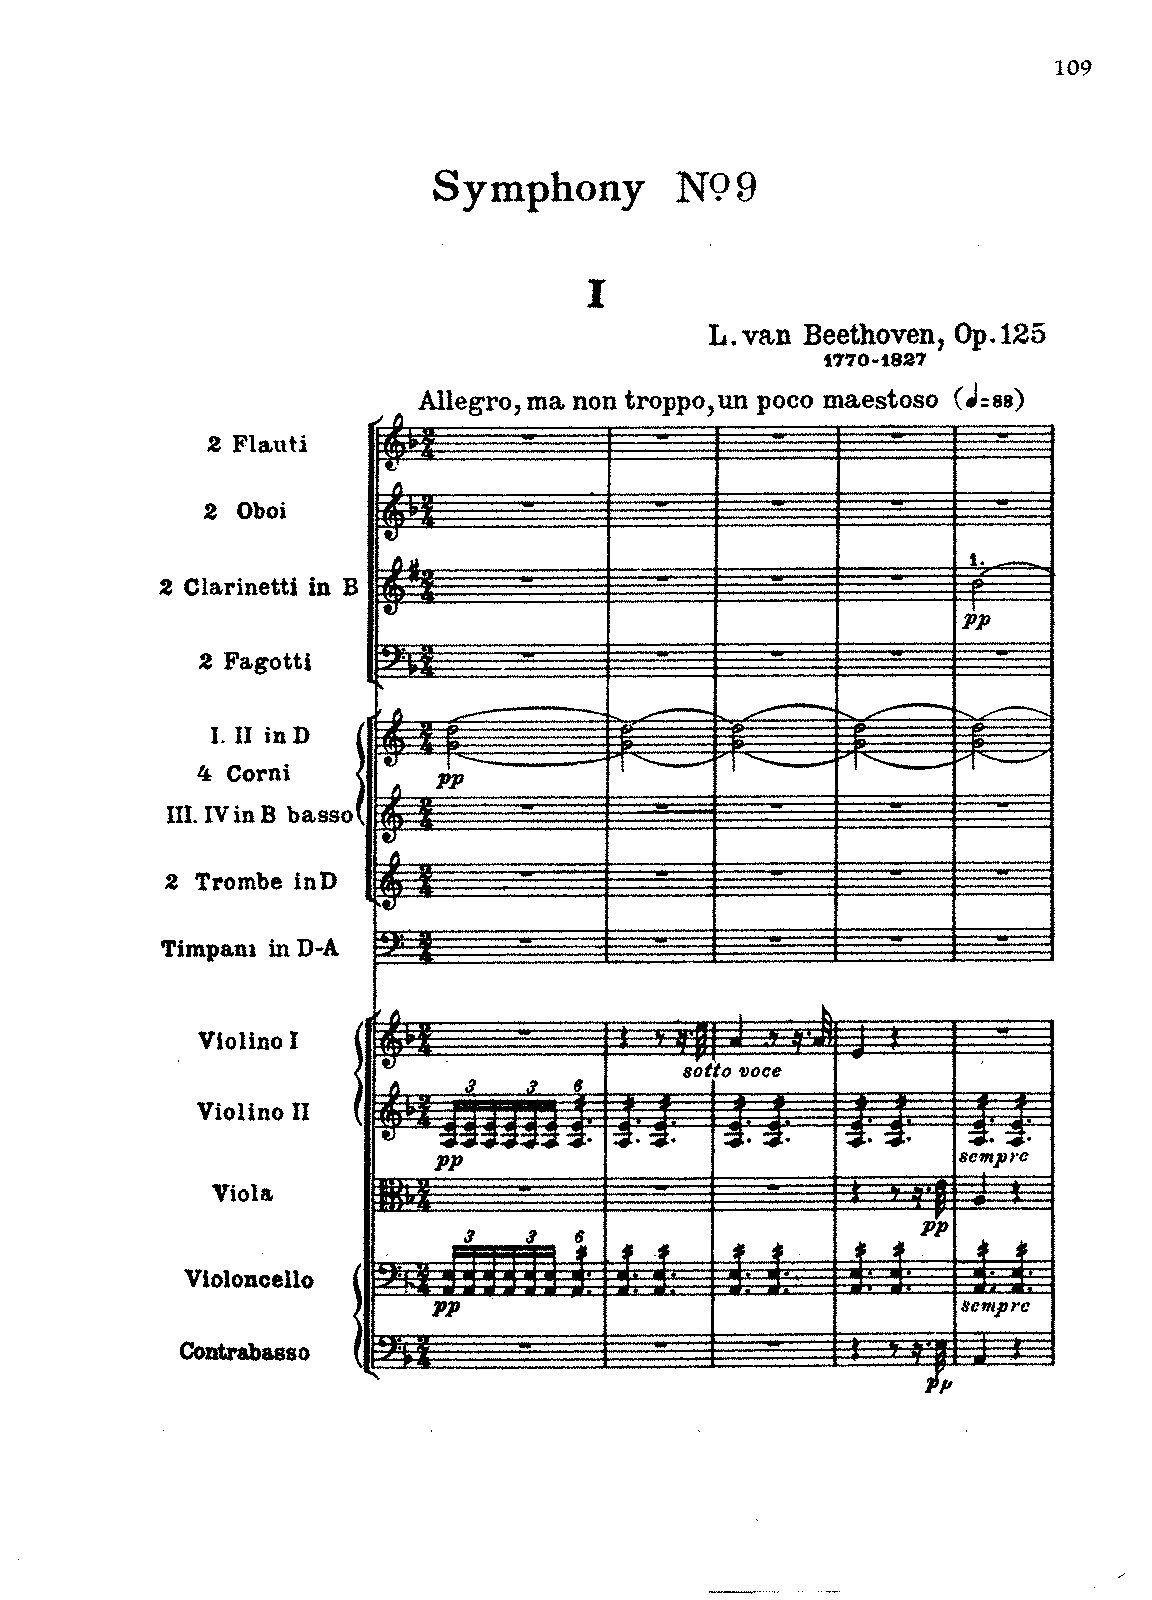 beethoven's 4th symphony youtube - softwaremonster info